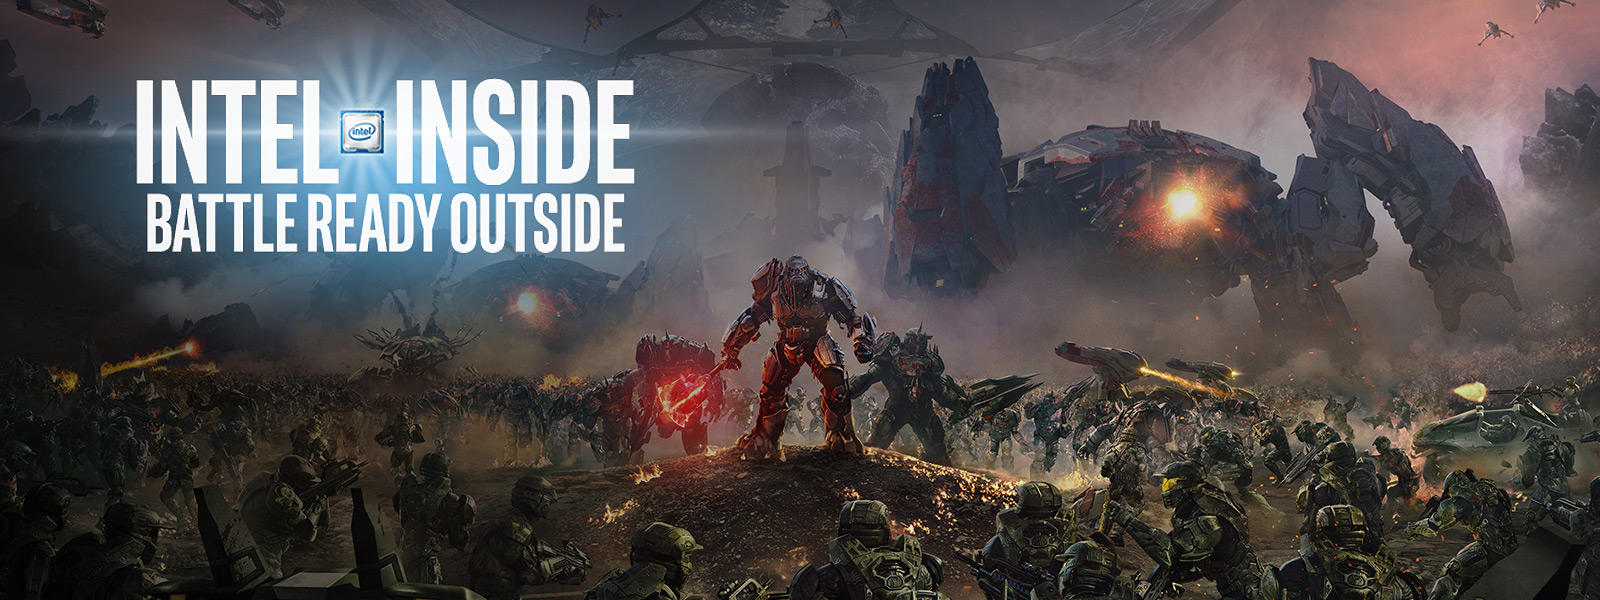 Intel Inside logo, atriox in the middle of a battle scene